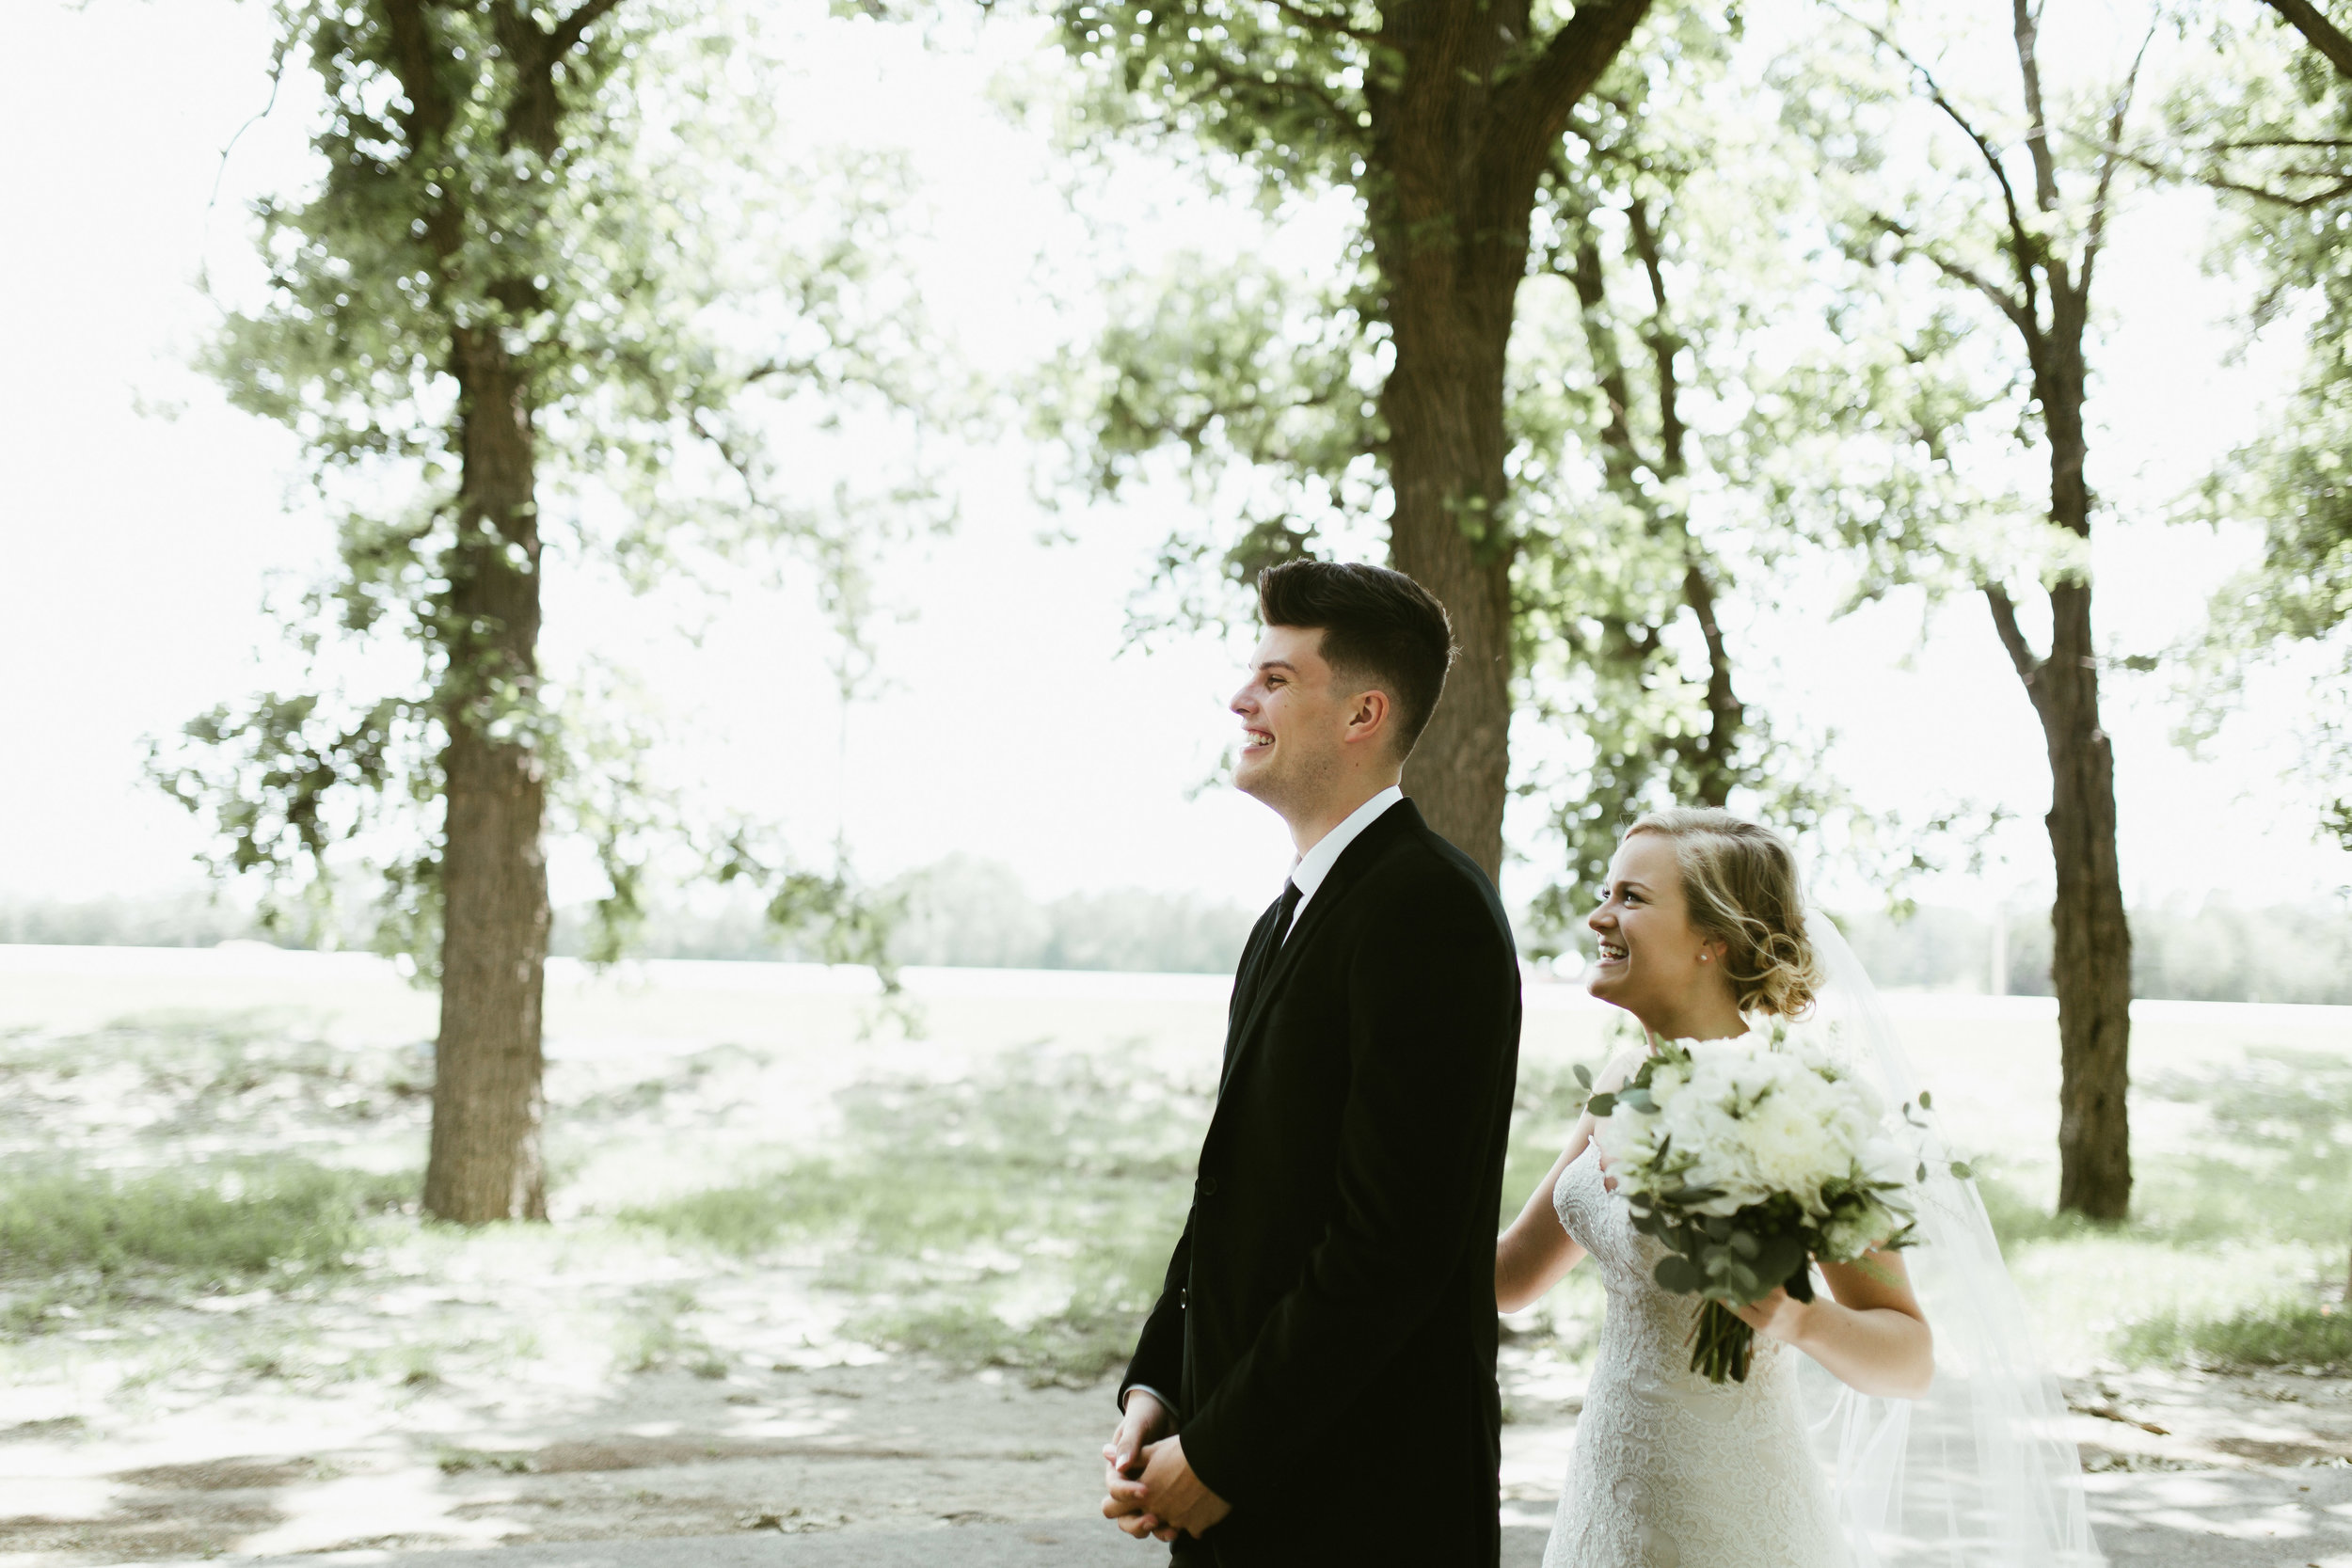 Megan&JaredMarried-163.jpg